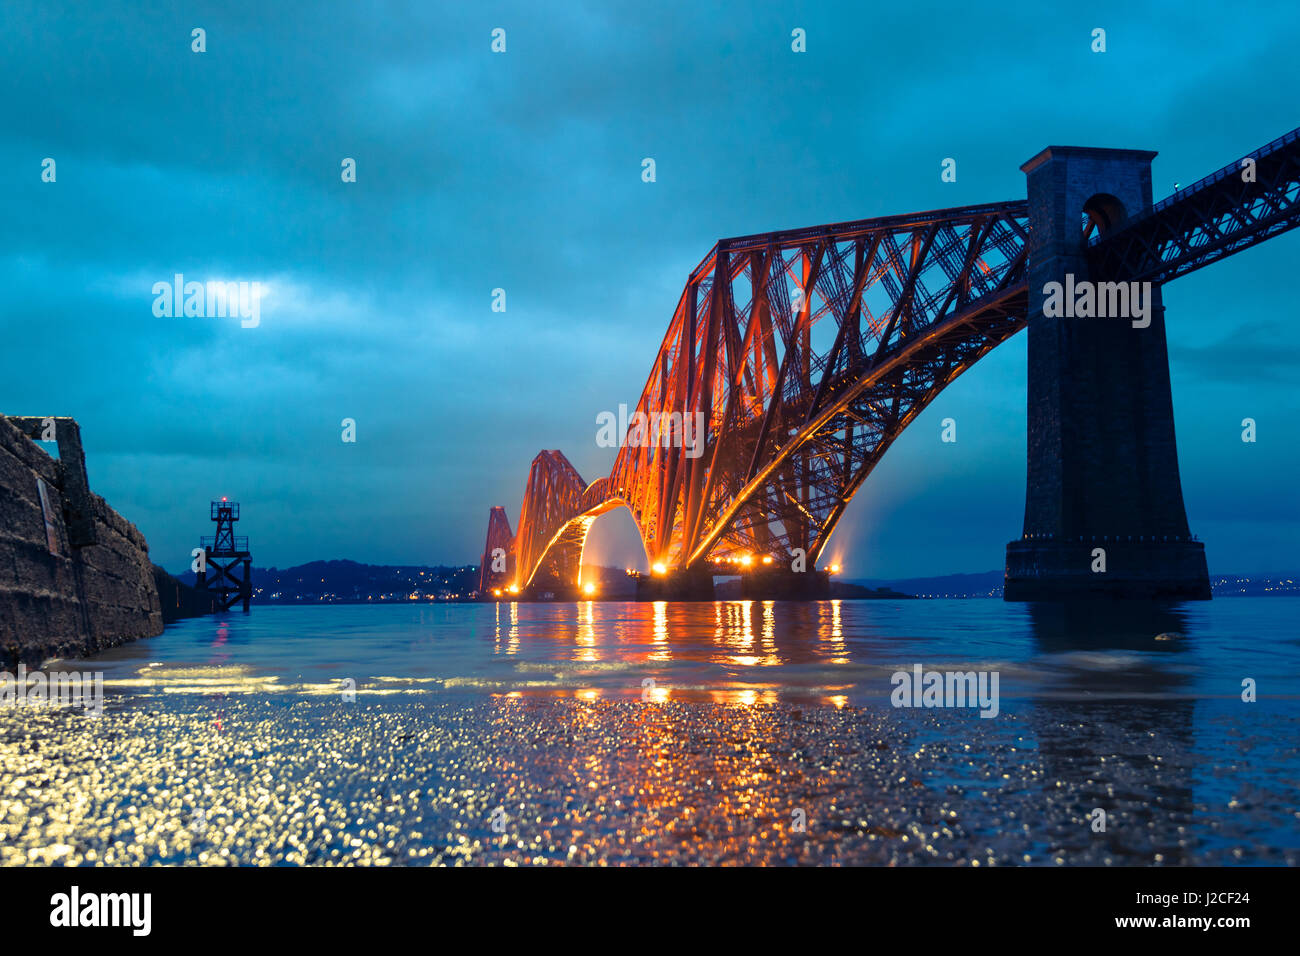 Reflections of the iconic Forth Rail Bridge in the Firth River at dusk. South Queensferry, Edinburgh, Scotland - Stock Image